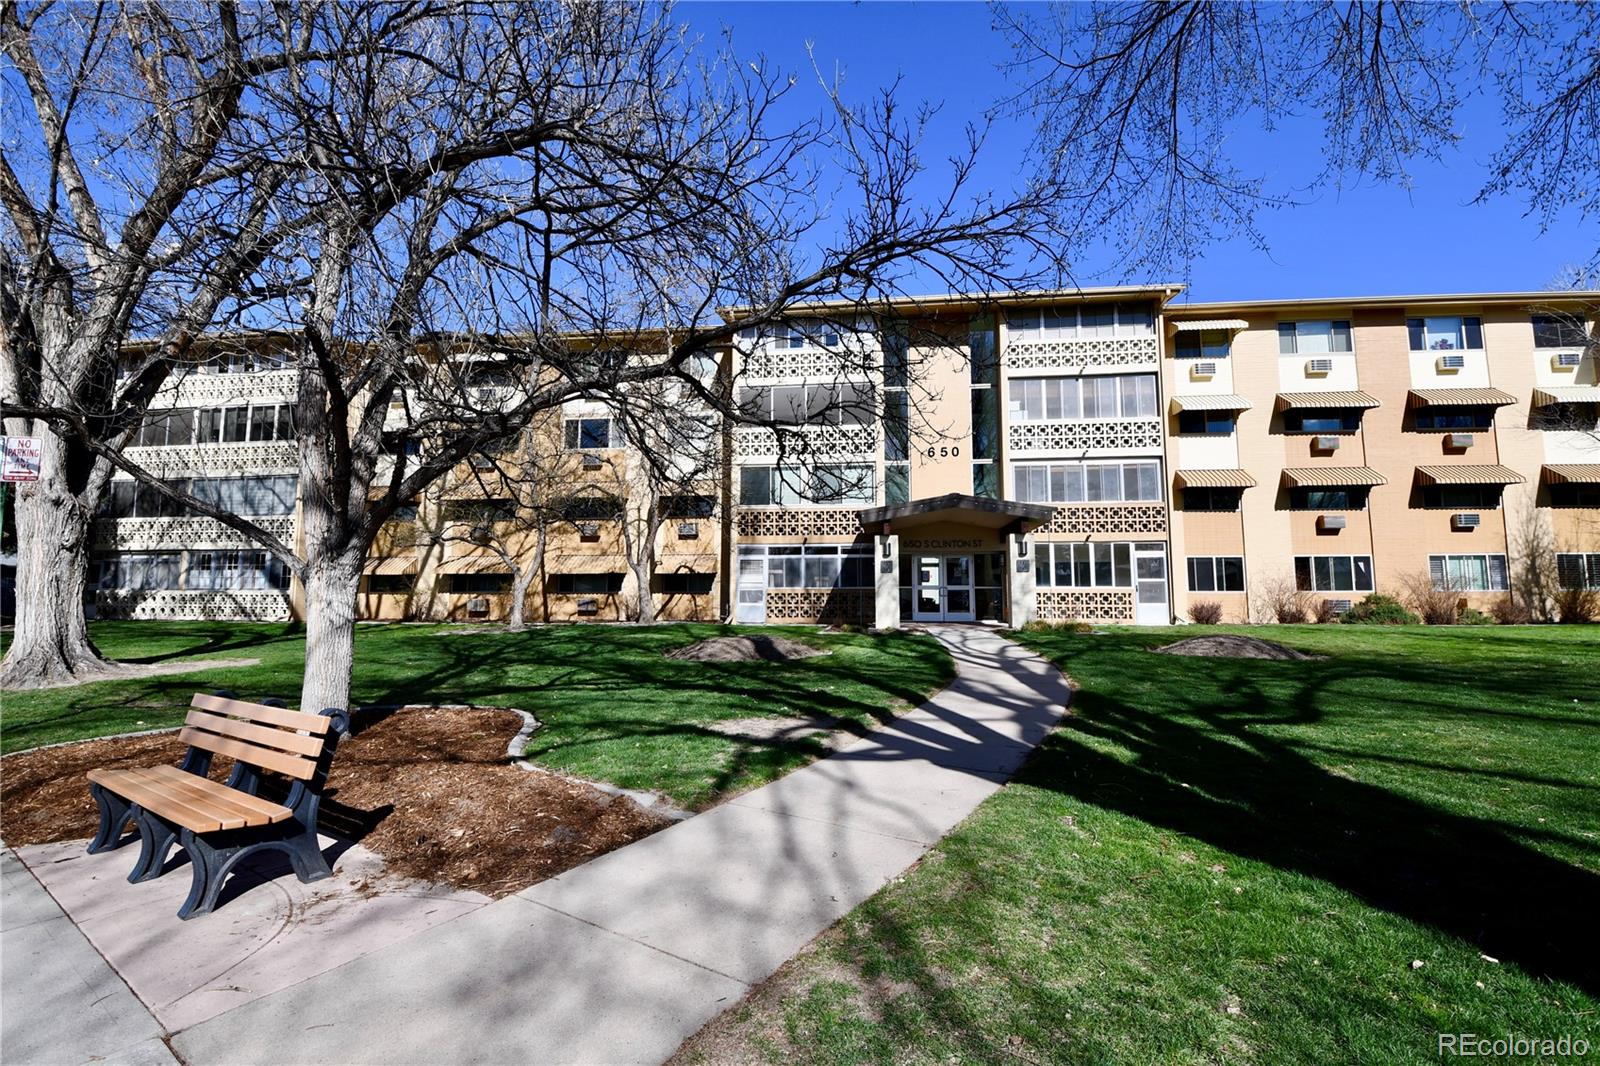 This is your opportunity to own one of the largest penthouse units in the Windsor Gardens 55+ Community. This home boasts 2 master bedrooms, 1 additional bedroom, 3 baths, formal dining room, a large living room, a kitchen, a large pantry/storage room, and an enclosed sunroom to enjoy Colorado's gorgeous sunsets. Use of 2 storage units (11D and 9D) and 2 garage spaces (#81 and #69) are also included. Owners in the Windsor Garden Community enjoy a variety of amenities included in the monthly HOA fee some of which include a large community center, fitness, center, indoor and outdoor pool, golf course and pro shop, classes, auditorium, restaurant, gardens. Welcome Home to Denver's premier active adult community!HOA fee includes property taxes, common area lawn, and landscaping, common parking, common snow removal, community center fee (includes all available classes), capital improvement and capital equipment, gas/electric (heat for units and common area electricity), insurance on the common areas, operations, trash removal, water/sewer.Please take a look at the video walk through tour found at https://youtu.be/TRTyIcQ-6qc. Tour this home without getting in the car!